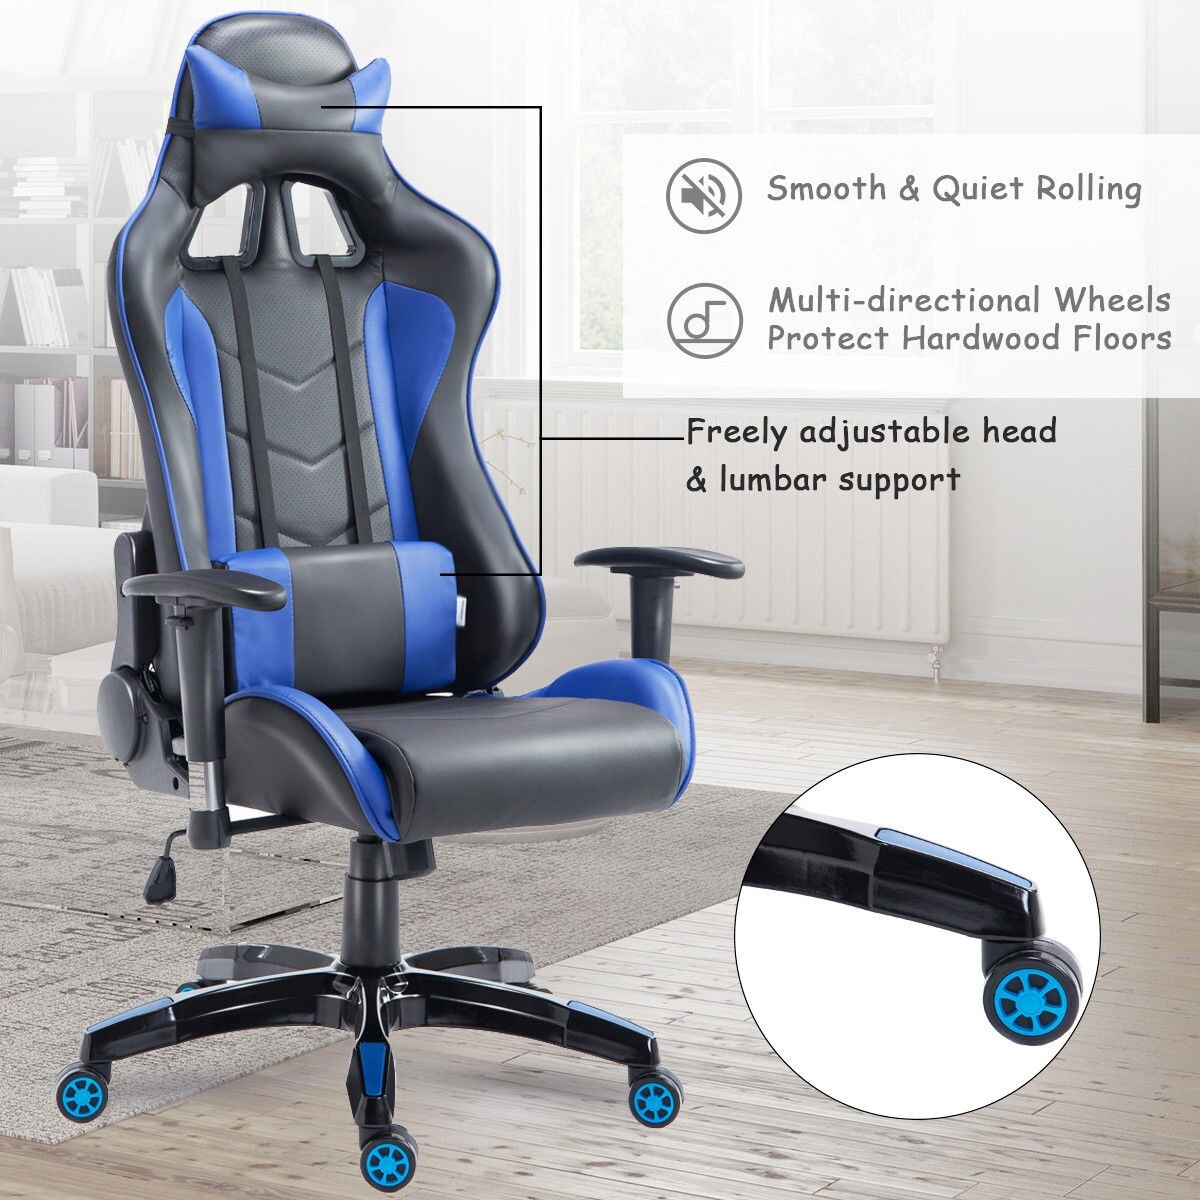 blue leather office chair bean bag filler kmart shop costway high back executive racing reclining gaming swivel pu